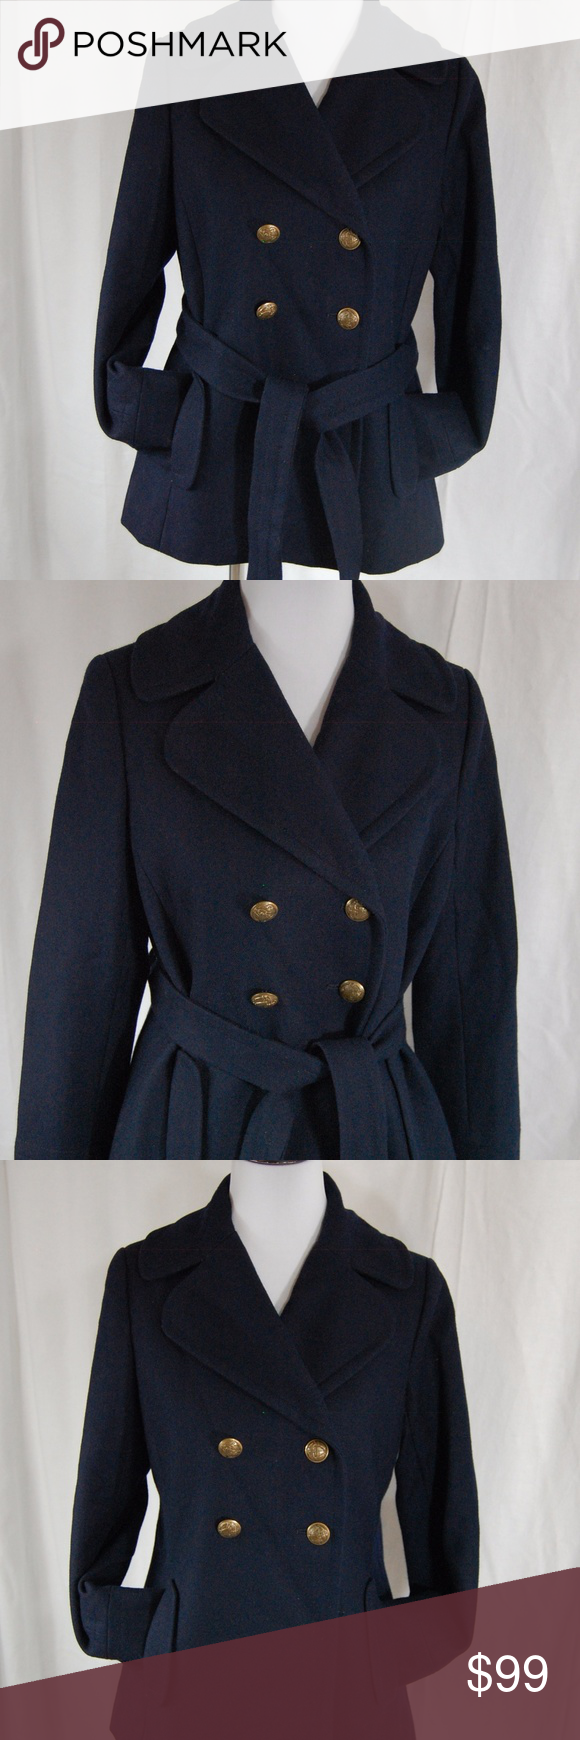 J Crew Double Breasted Pea Coat This navy J. Crew double